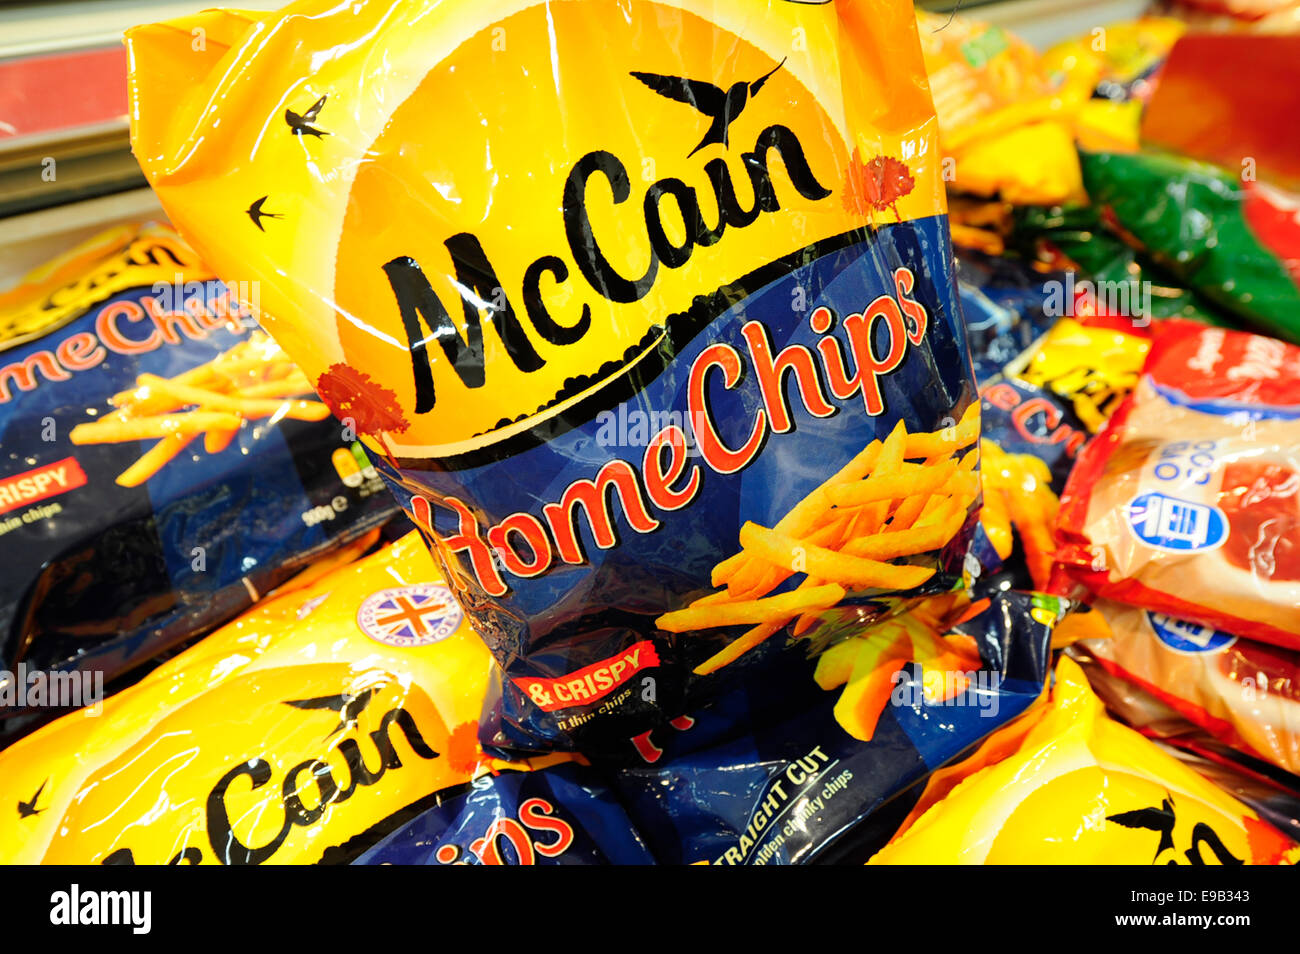 McCain Home chips been taken from the freezer (Newscast